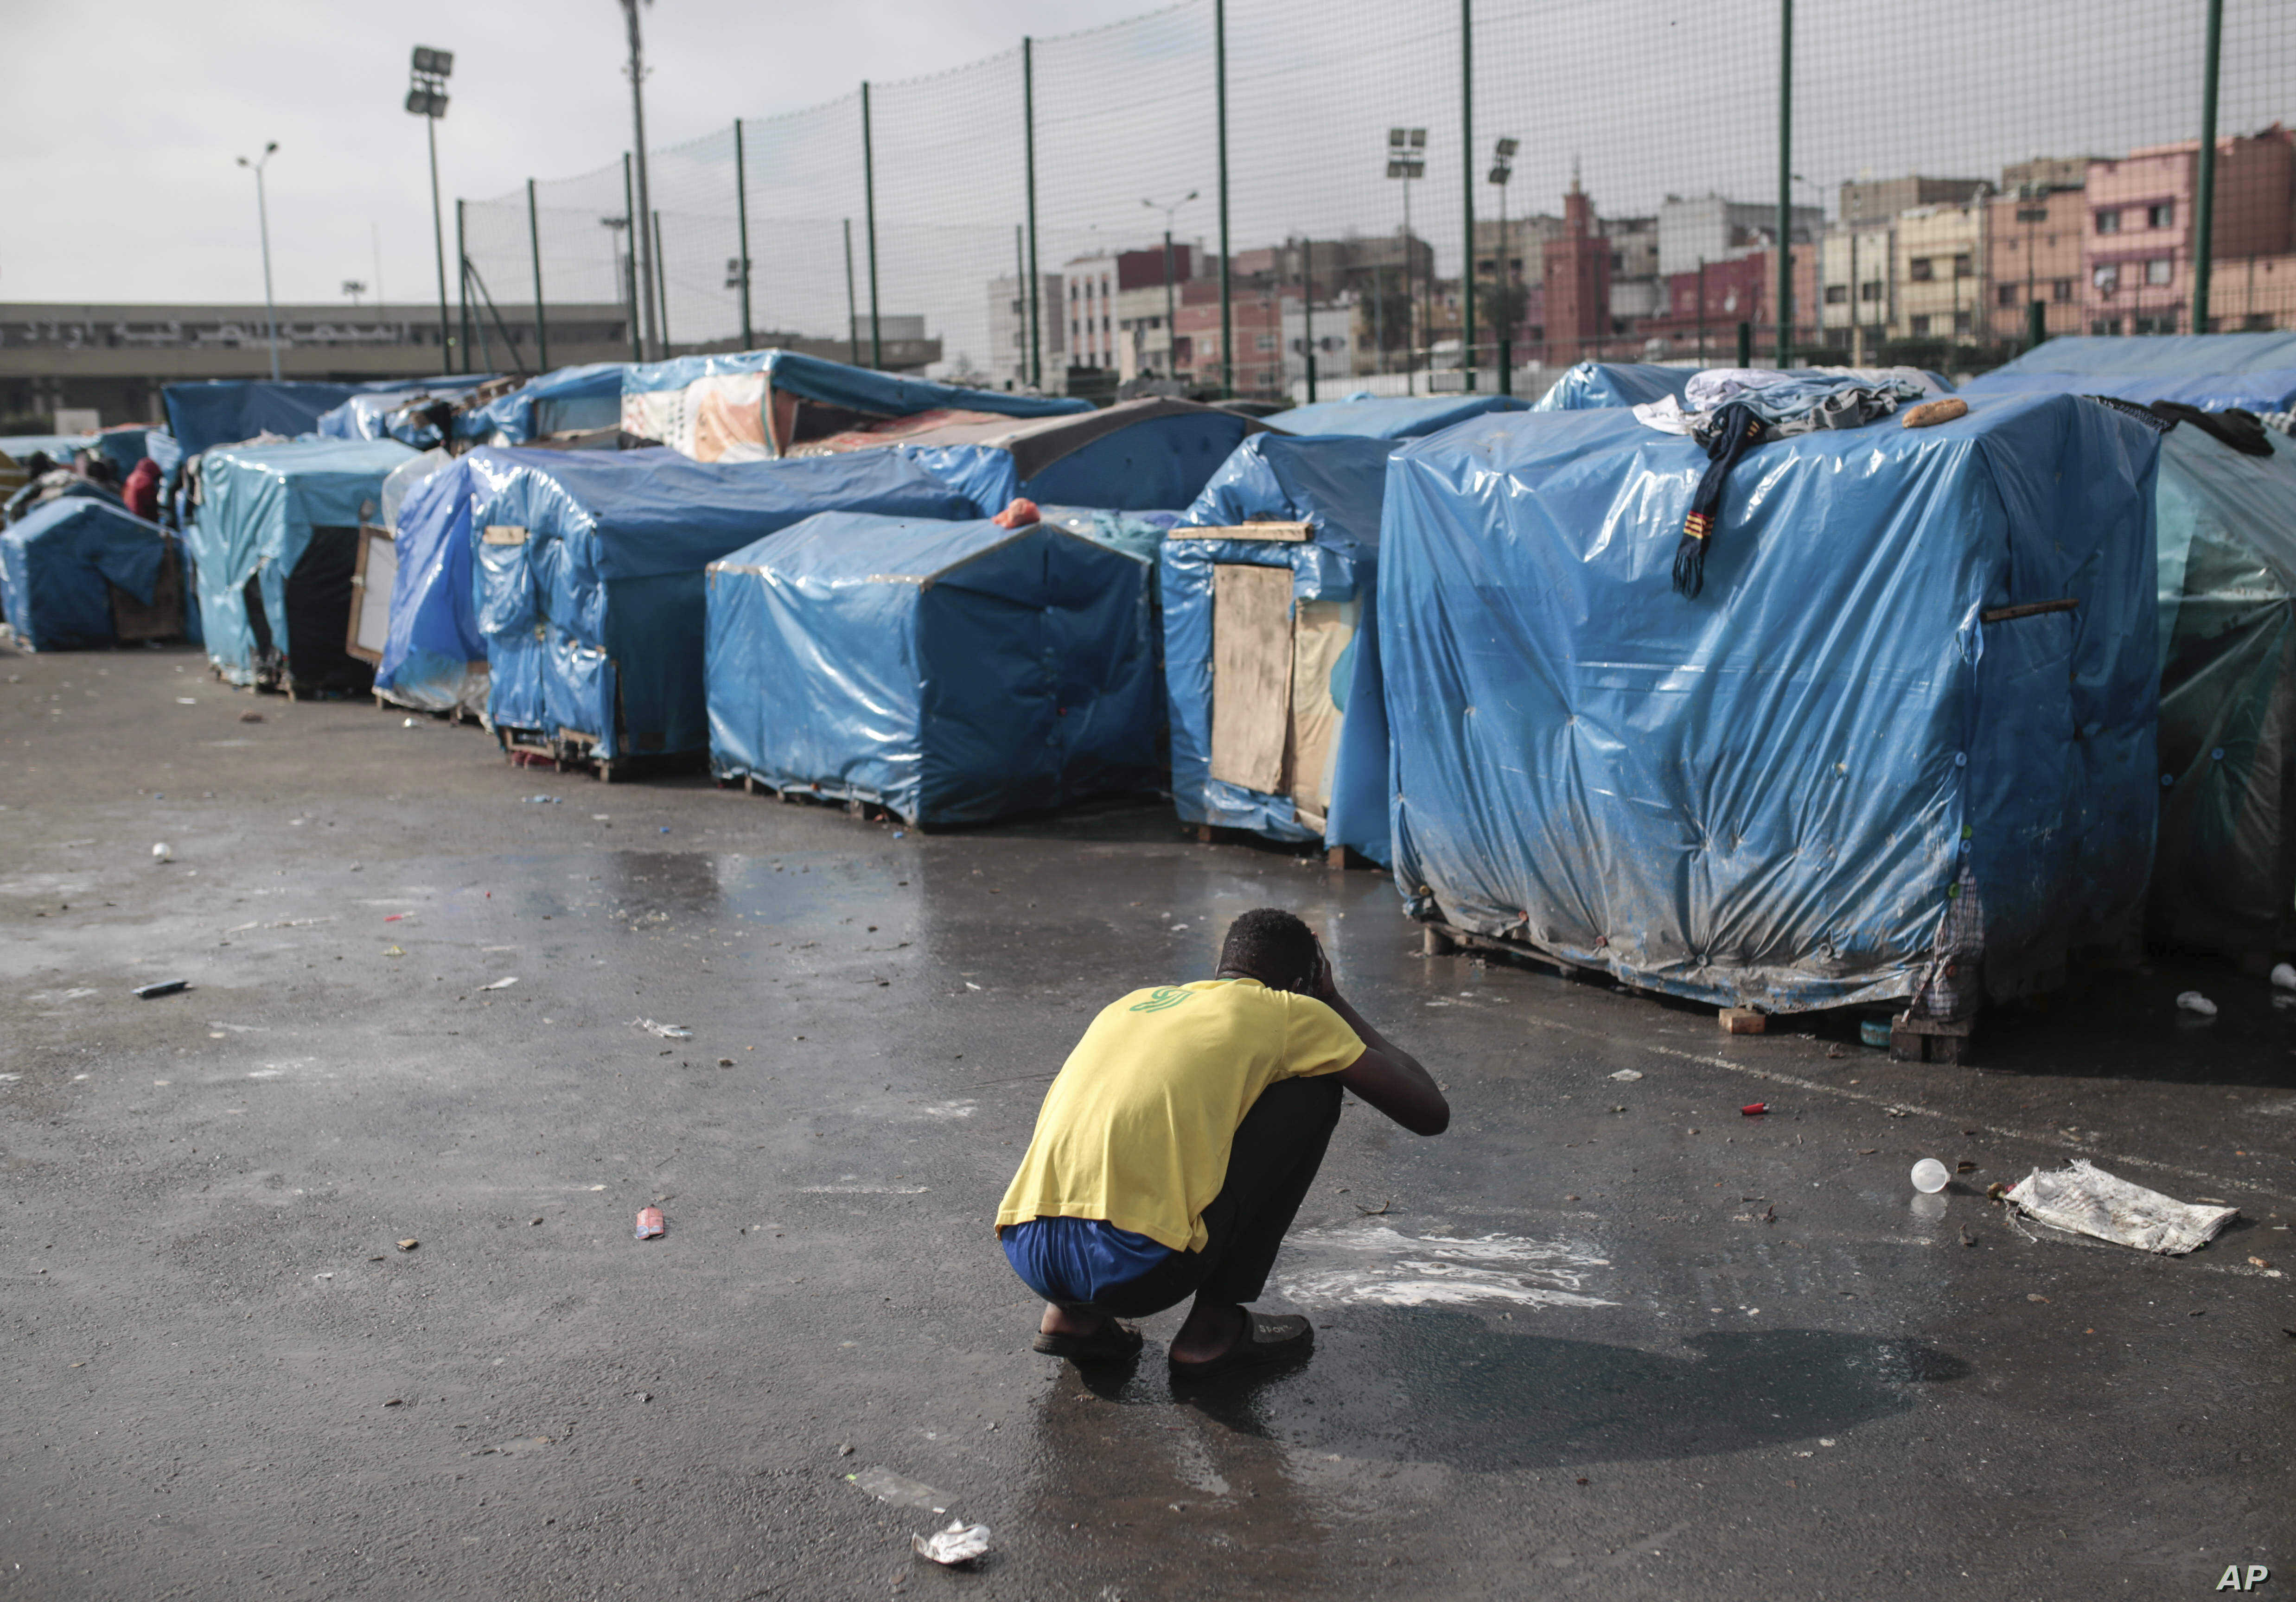 A sub-Saharan migrant washes at Ouled Ziane camp in Casablanca, Morocco, Dec. 6, 2018.